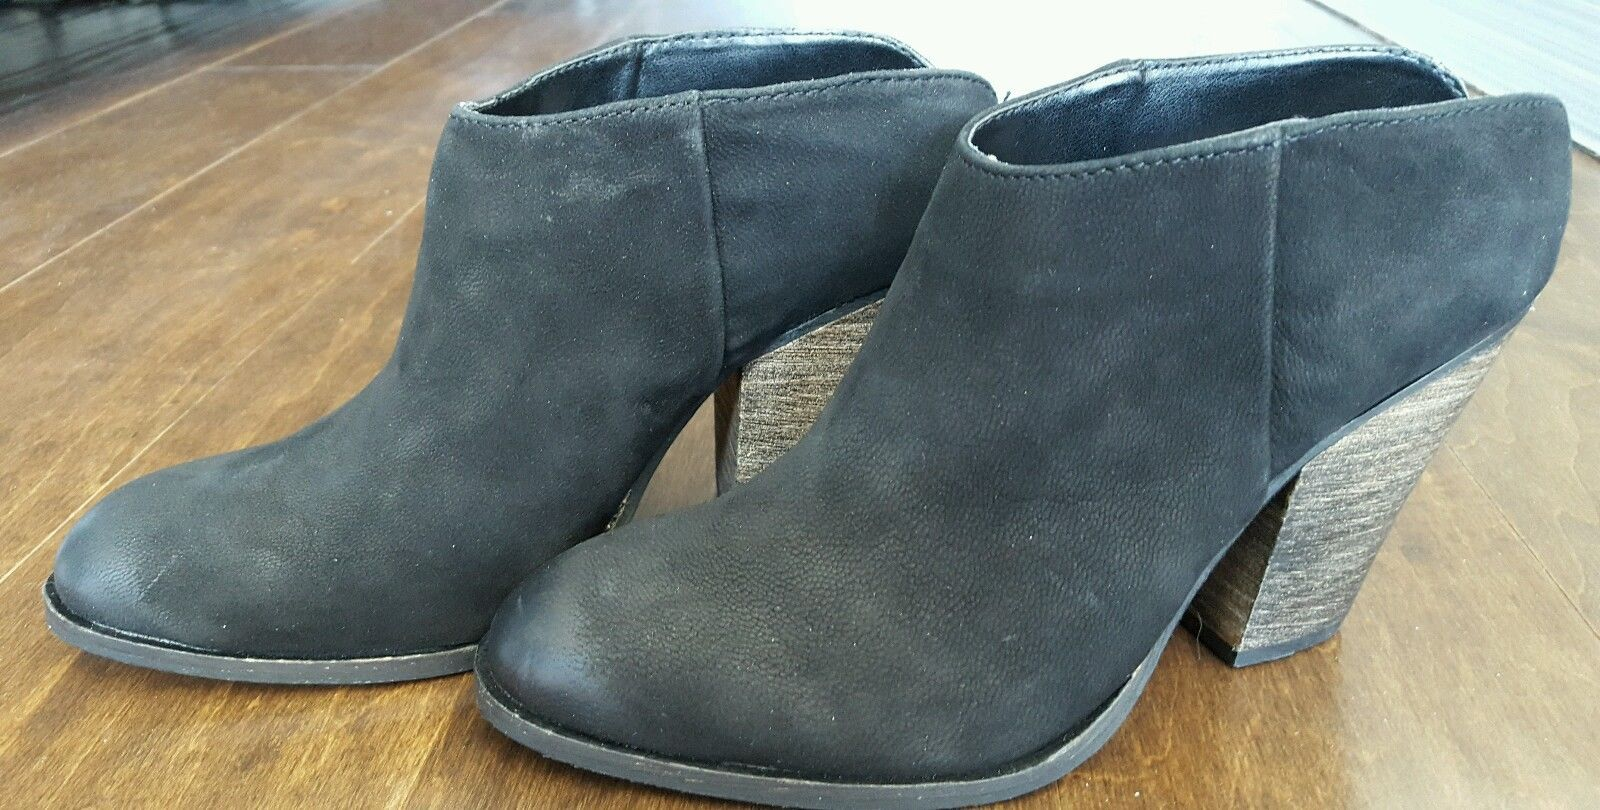 Steve Madden Hilltop black leather nubuck ankle bootie boots 5.5 NEW